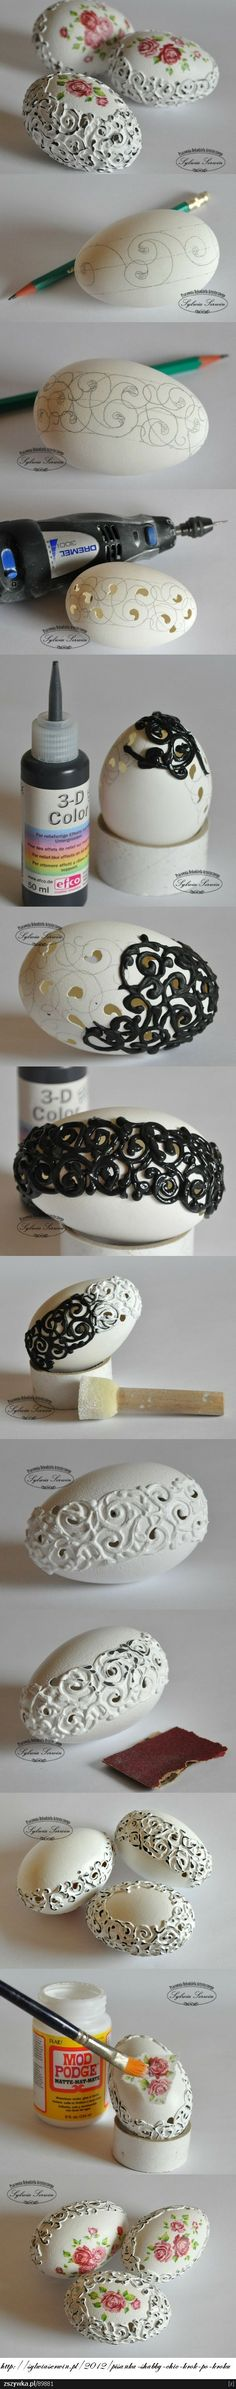 tutorial for making a decorative egg - egg shell, dimensional paint, roses on top, distressed finish @ diy - cottage, chippy, shabby chic, vintage